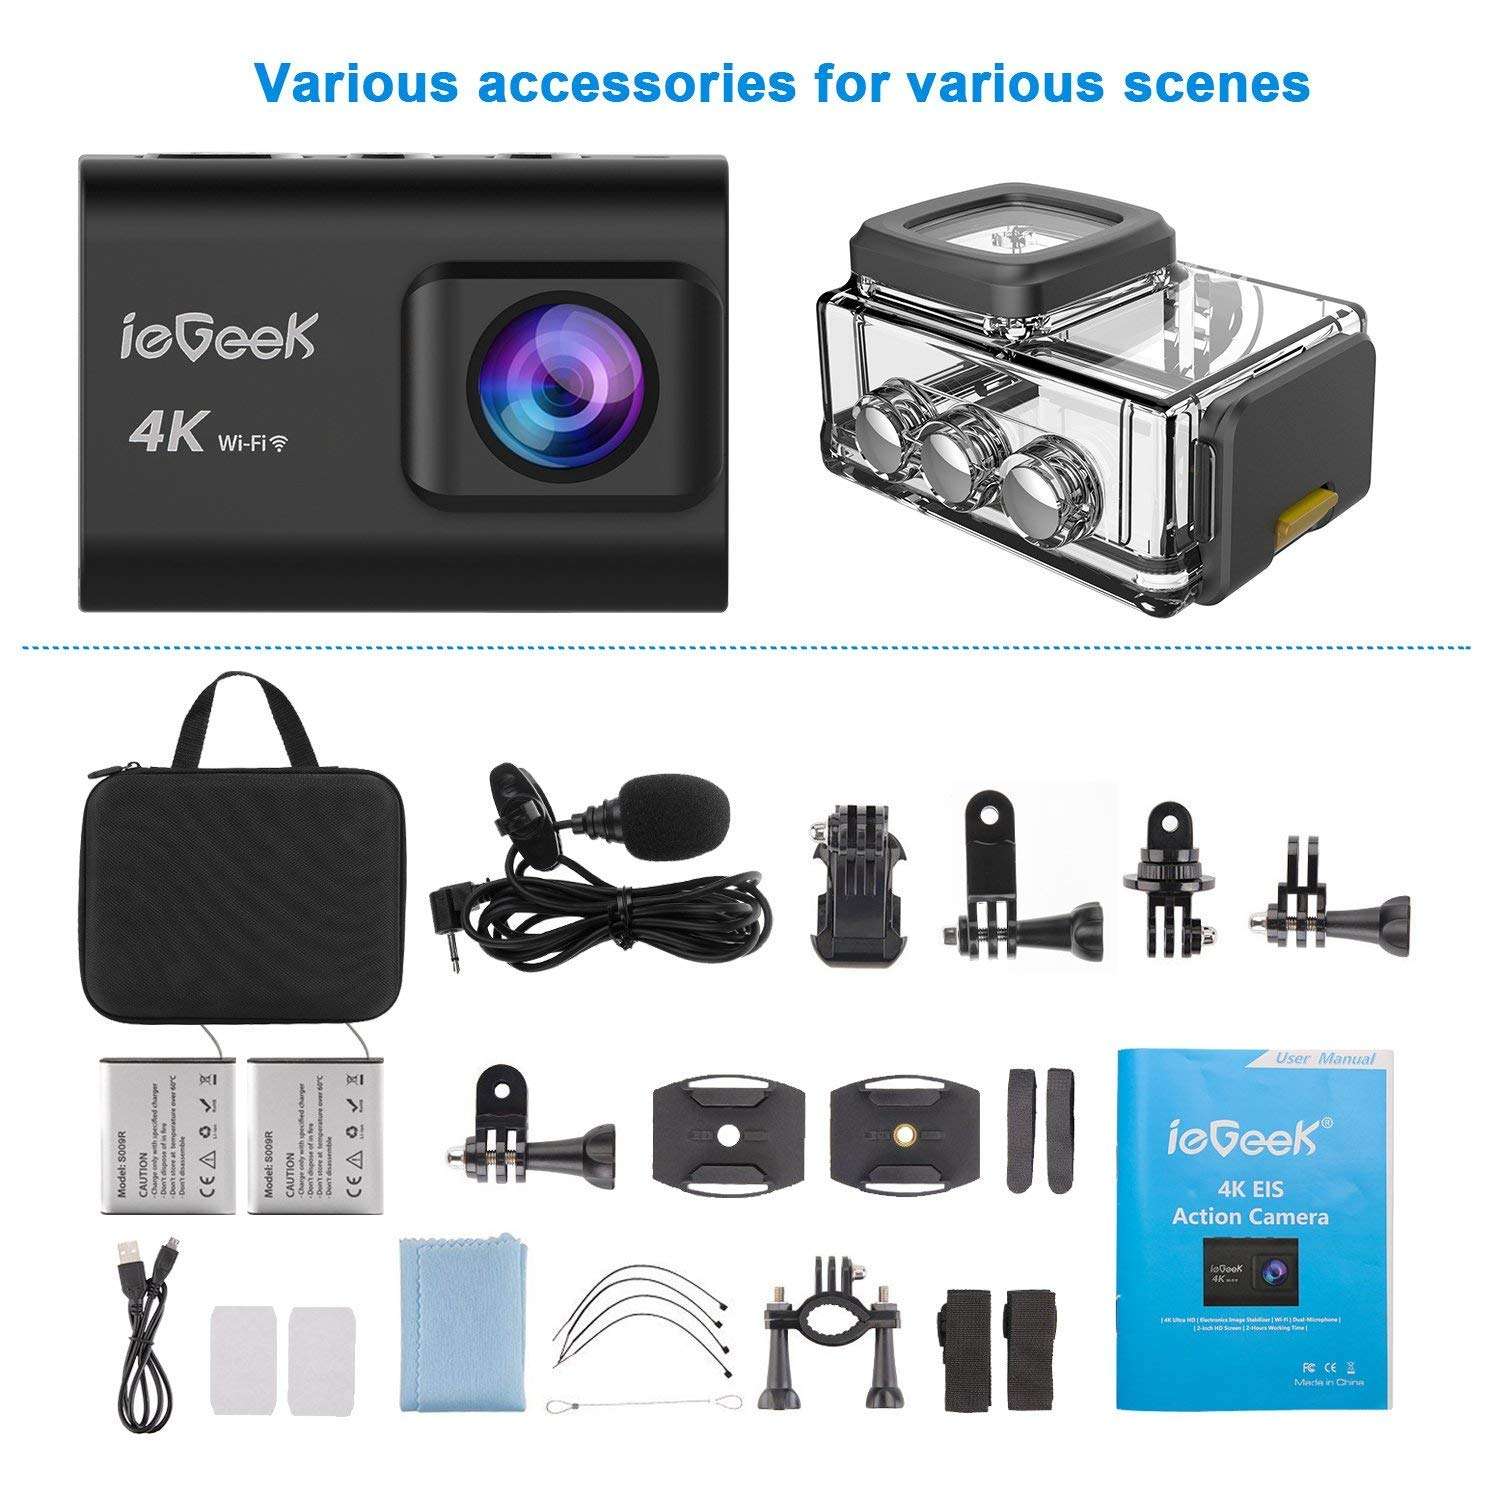 Action Camera, ieGeek 4K 20MP WiFi Waterproof Sports Cam Ultra HD Underwater Camera DV Camcorder EIS Image Stabilizer 170 Degree Wide-Angle with 2 Battery/External Microphone/Carry Case/Accessory Kit by ieGeek (Image #7)